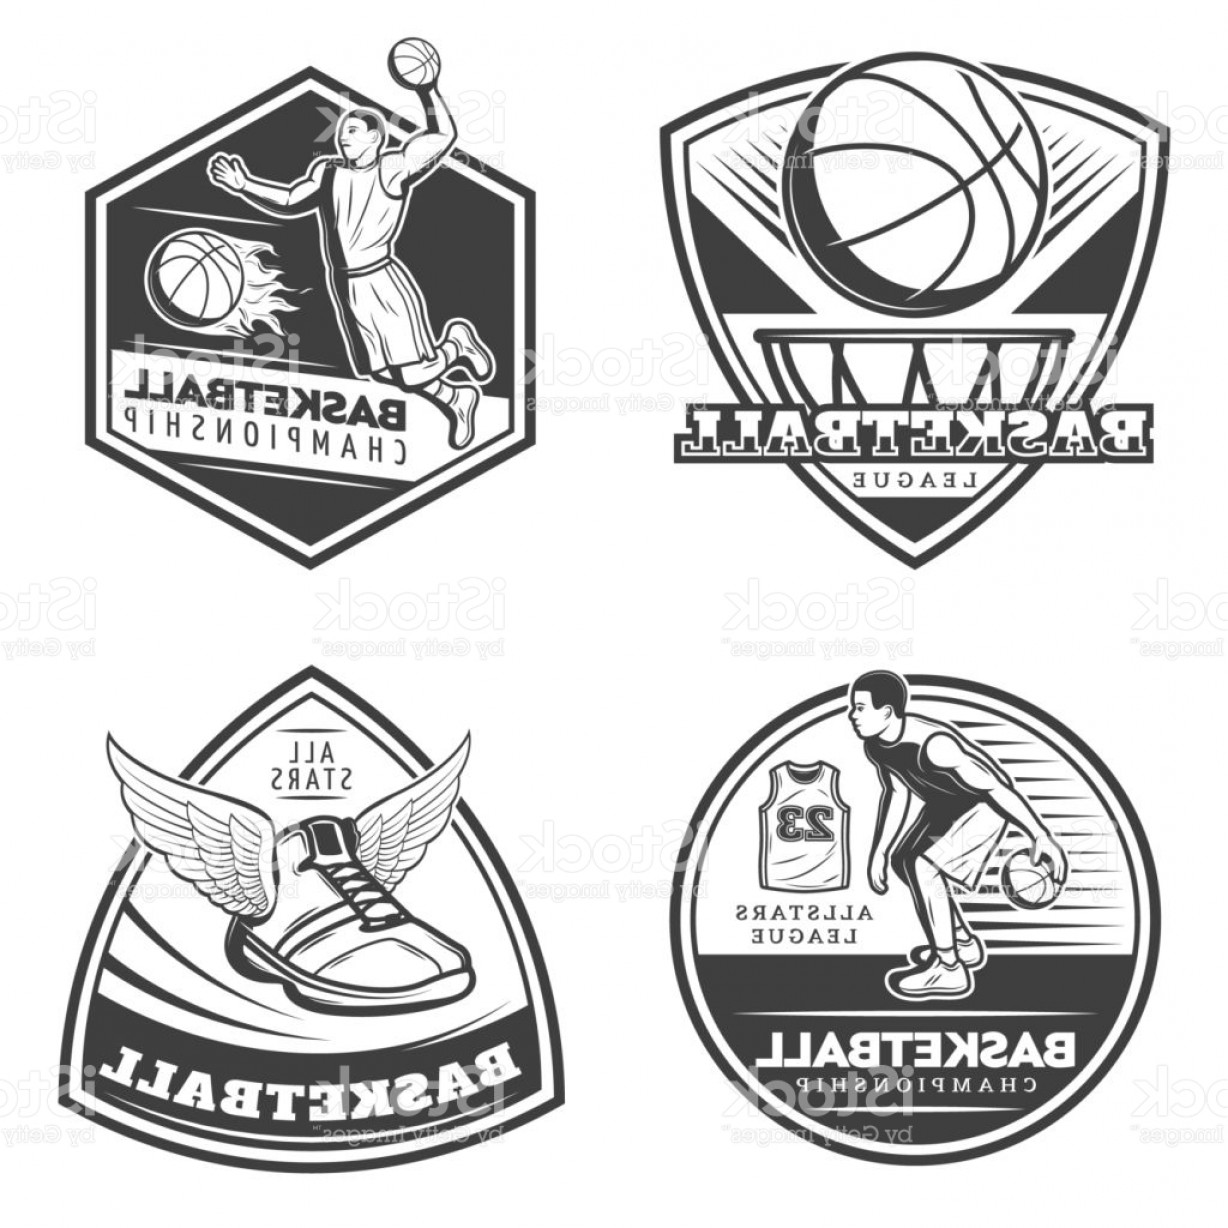 Vintage Basketball Vector: Vintage Basketball Emblems Set Gm